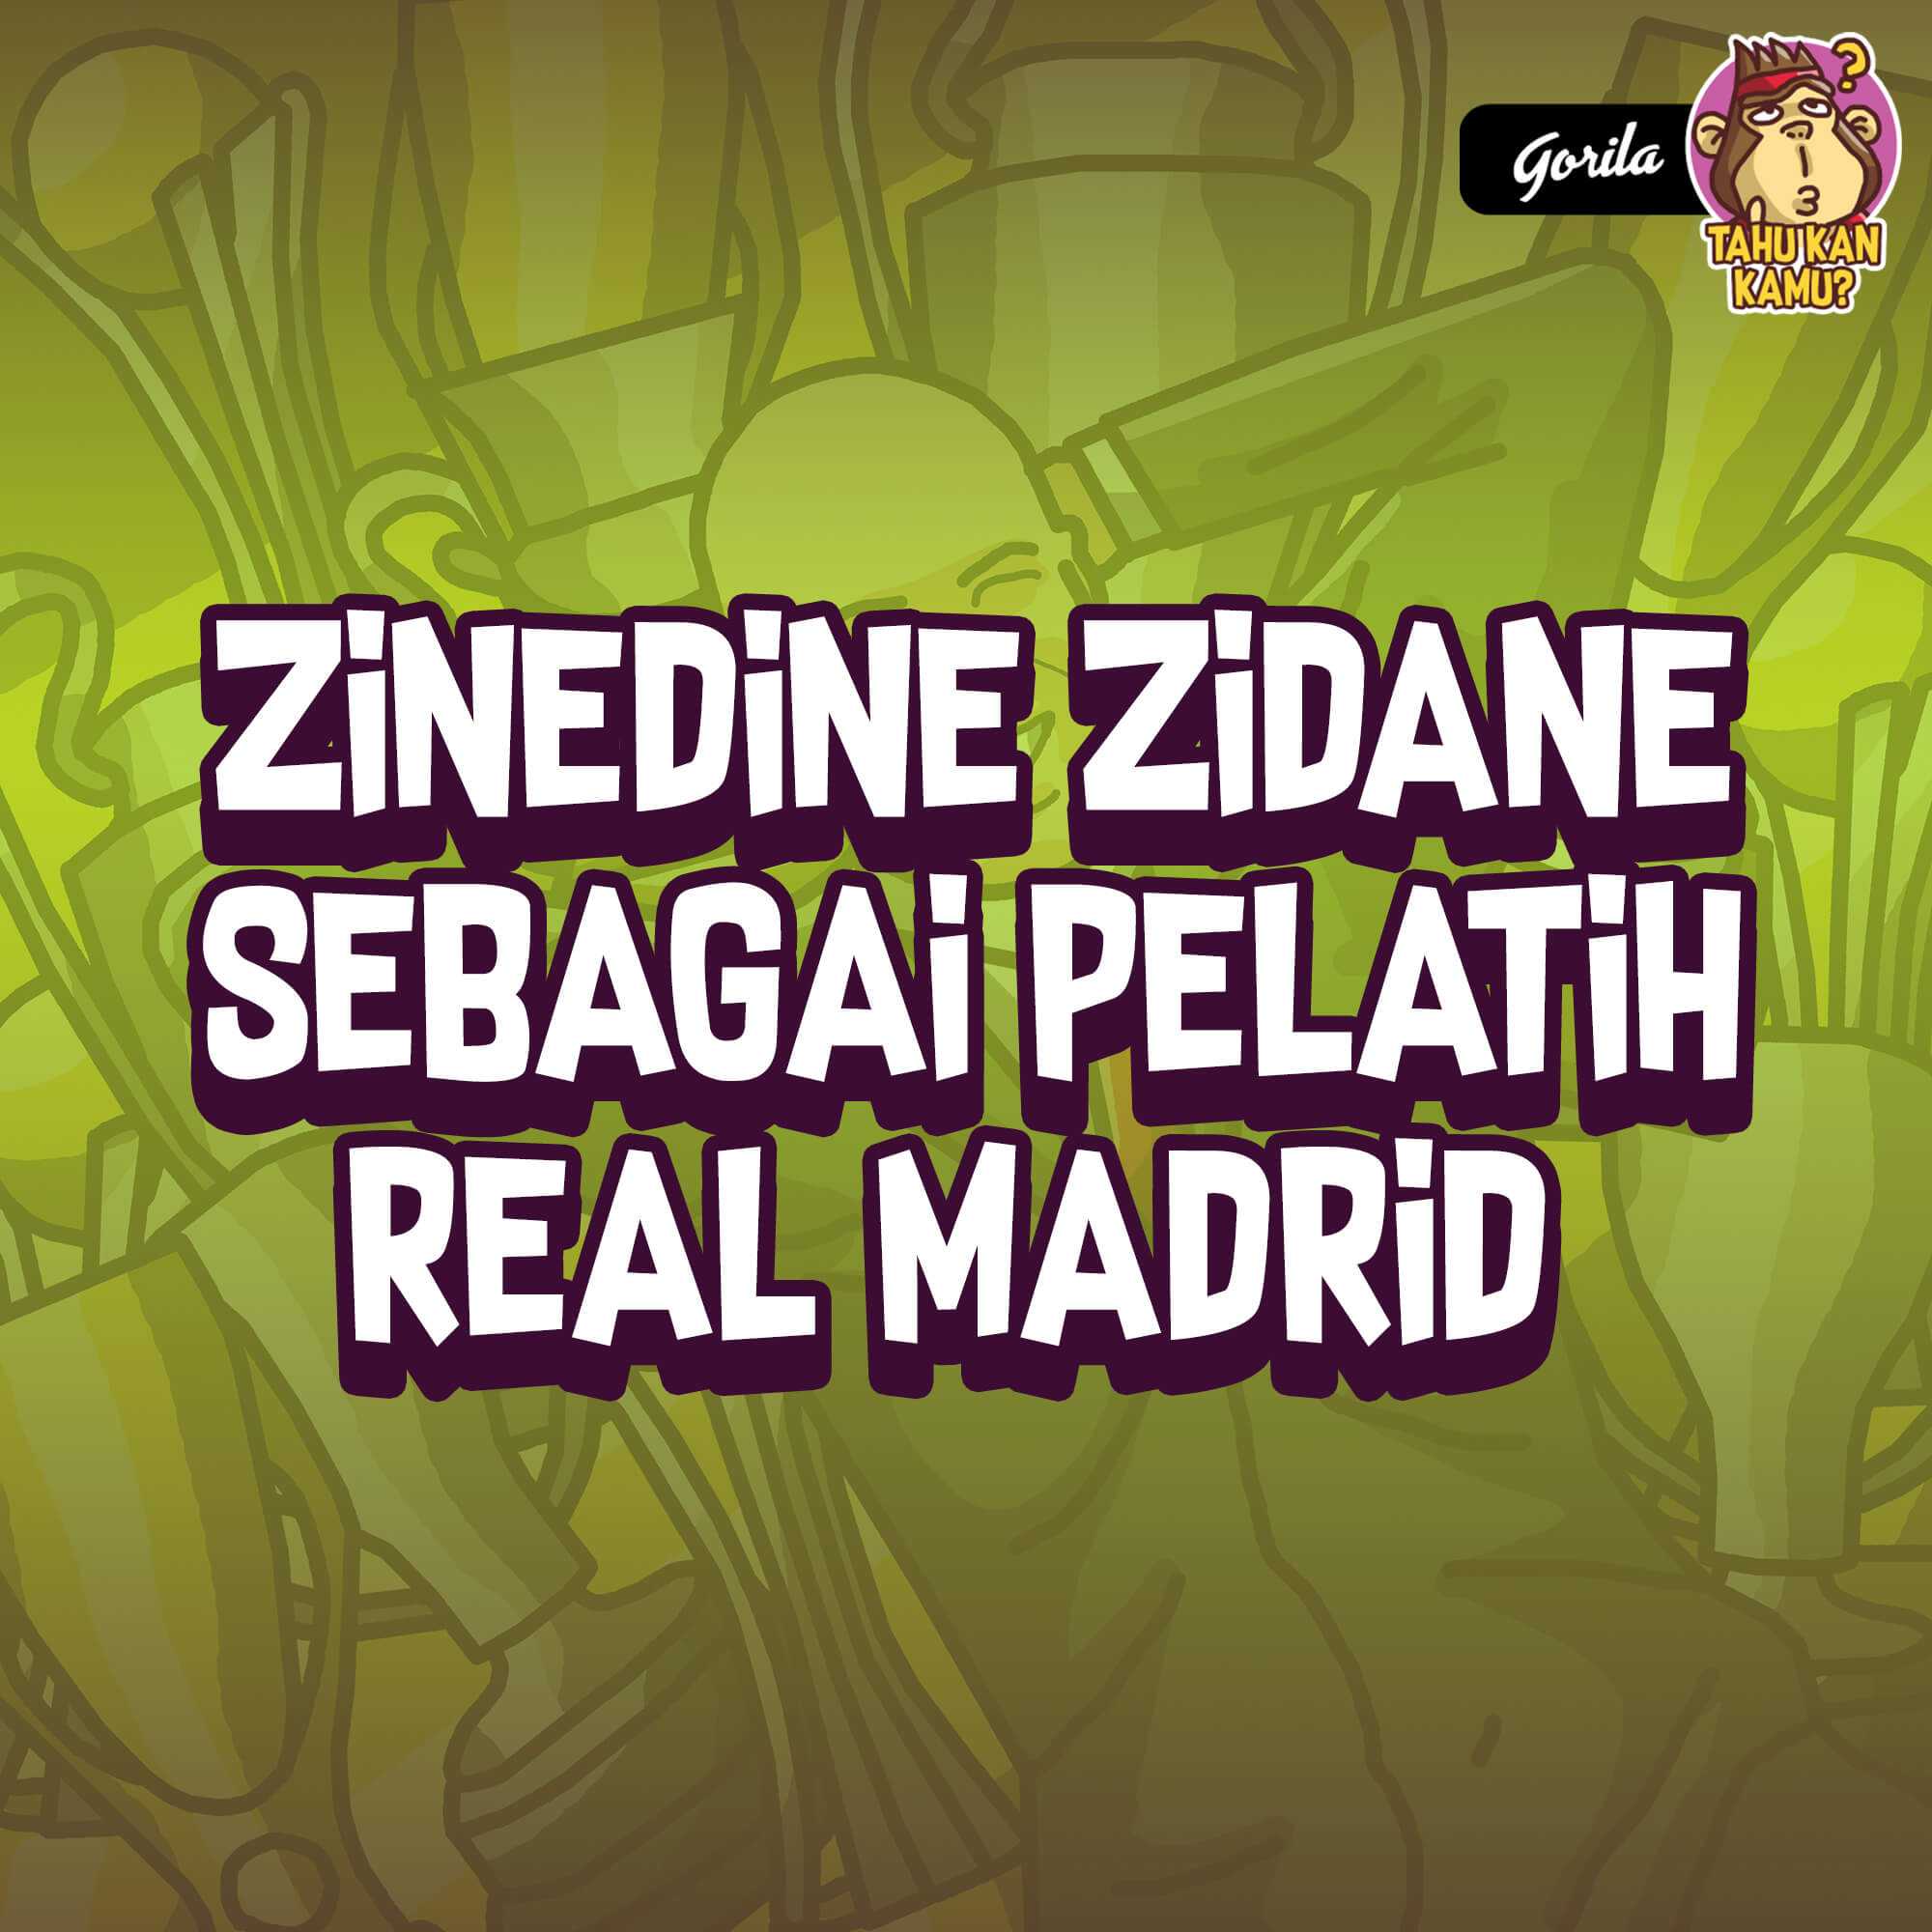 Kembalinya Era Keemasan Real Madrid?